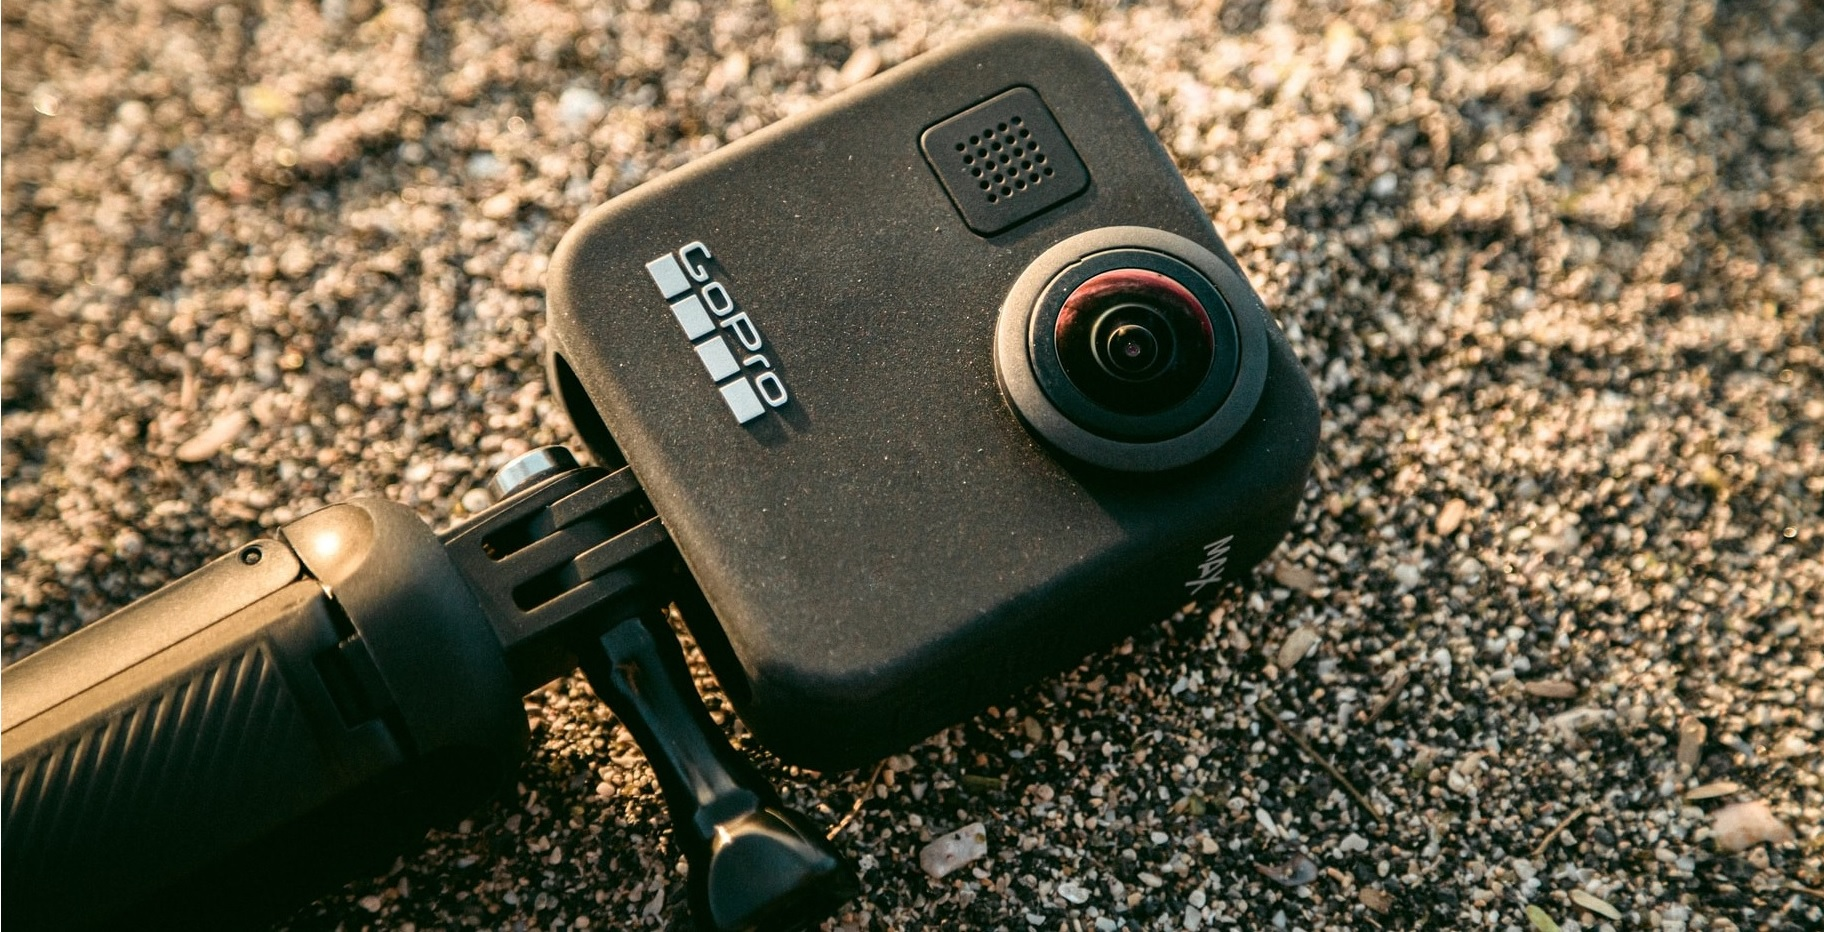 The GoPro Story